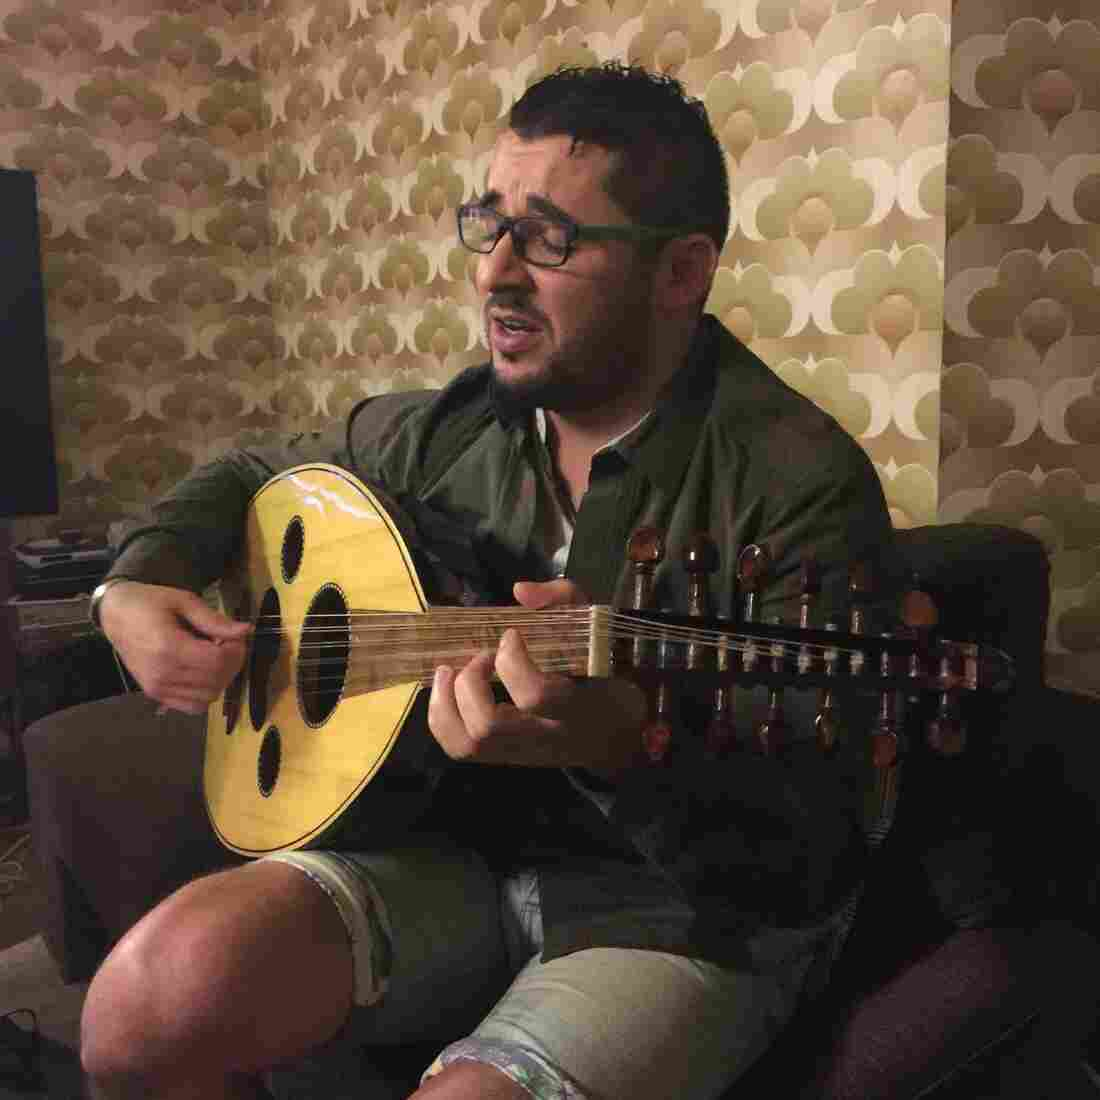 Mohamed Hashem, one of Saudi Arabia's best known musicians, plays the oud, a Middle Eastern lute.